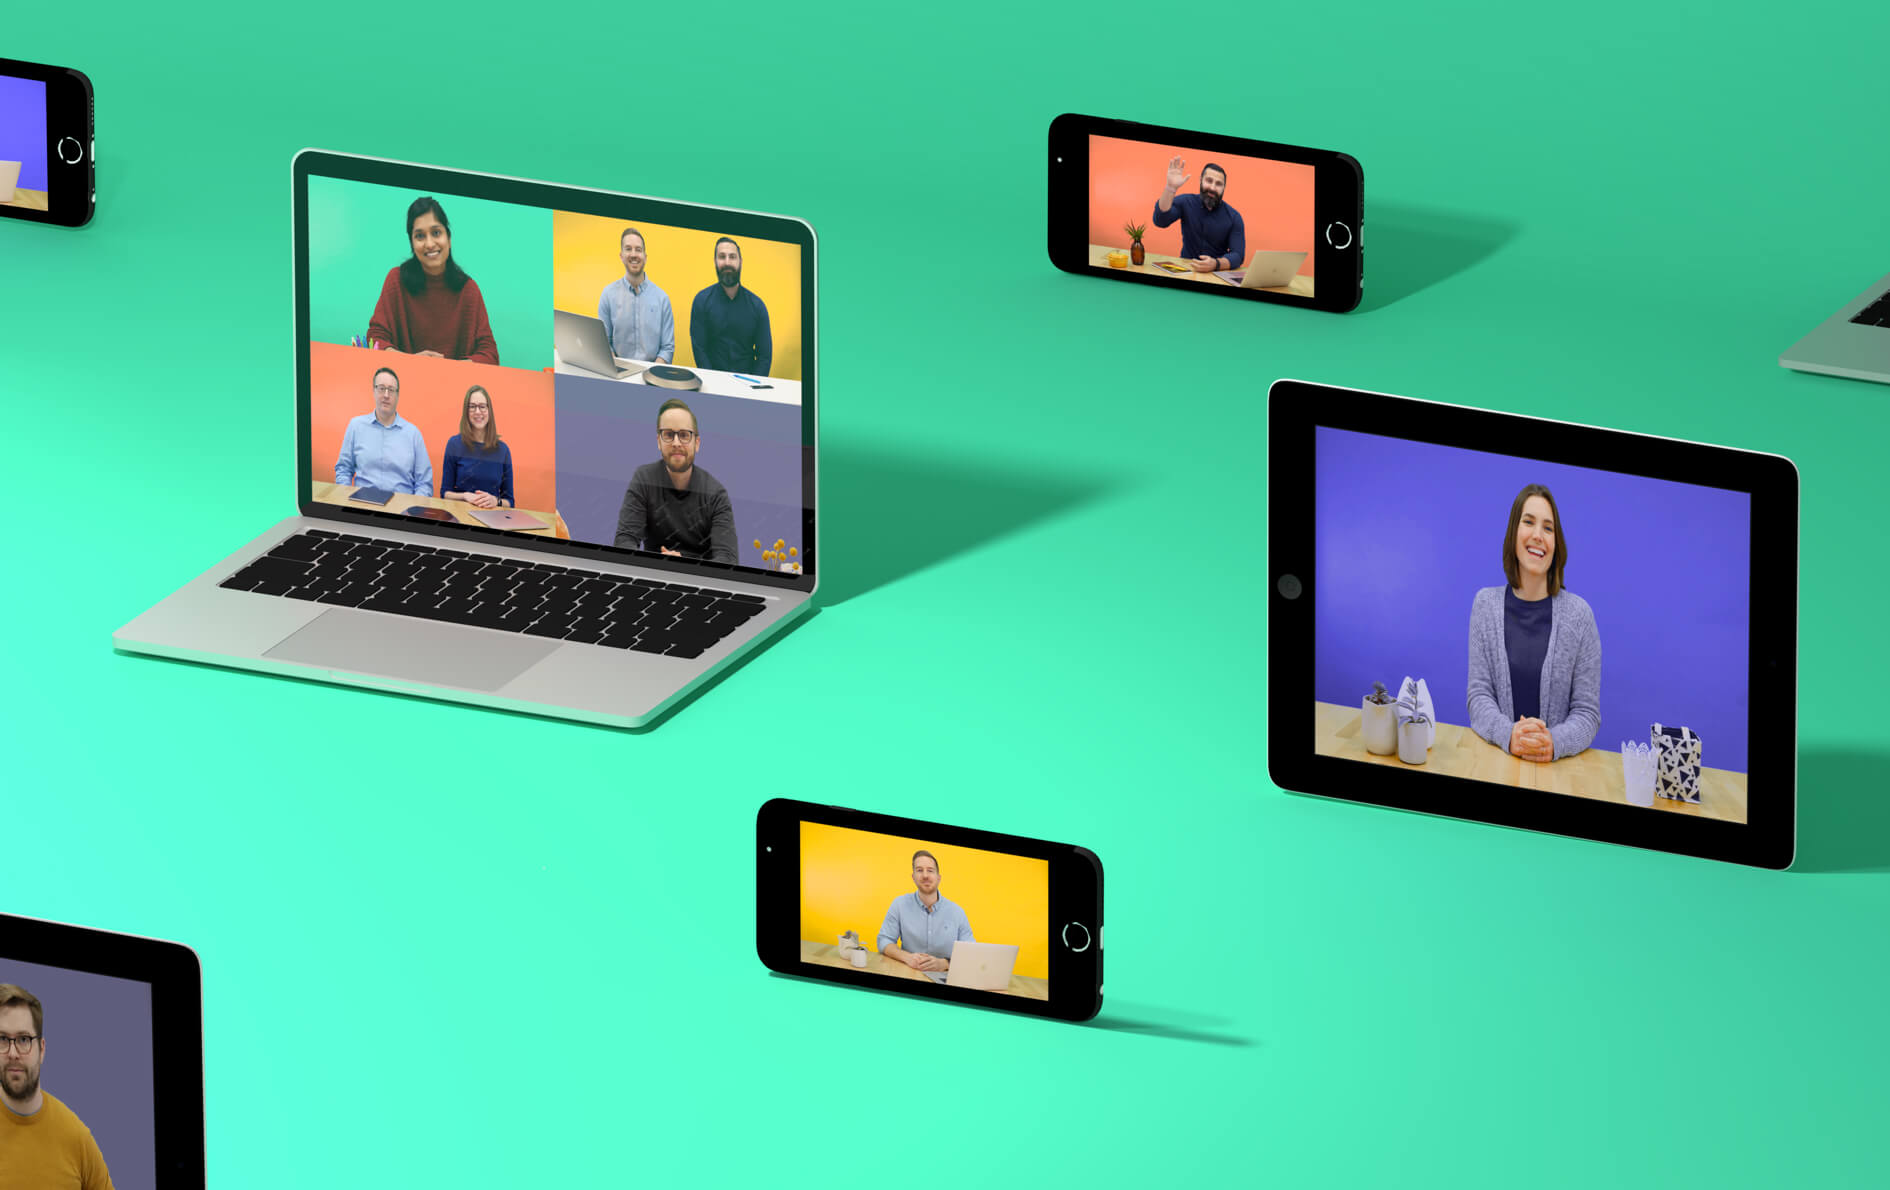 A collection of laptop, phones, and tablets displaying a Lifesize video conference on a green background.